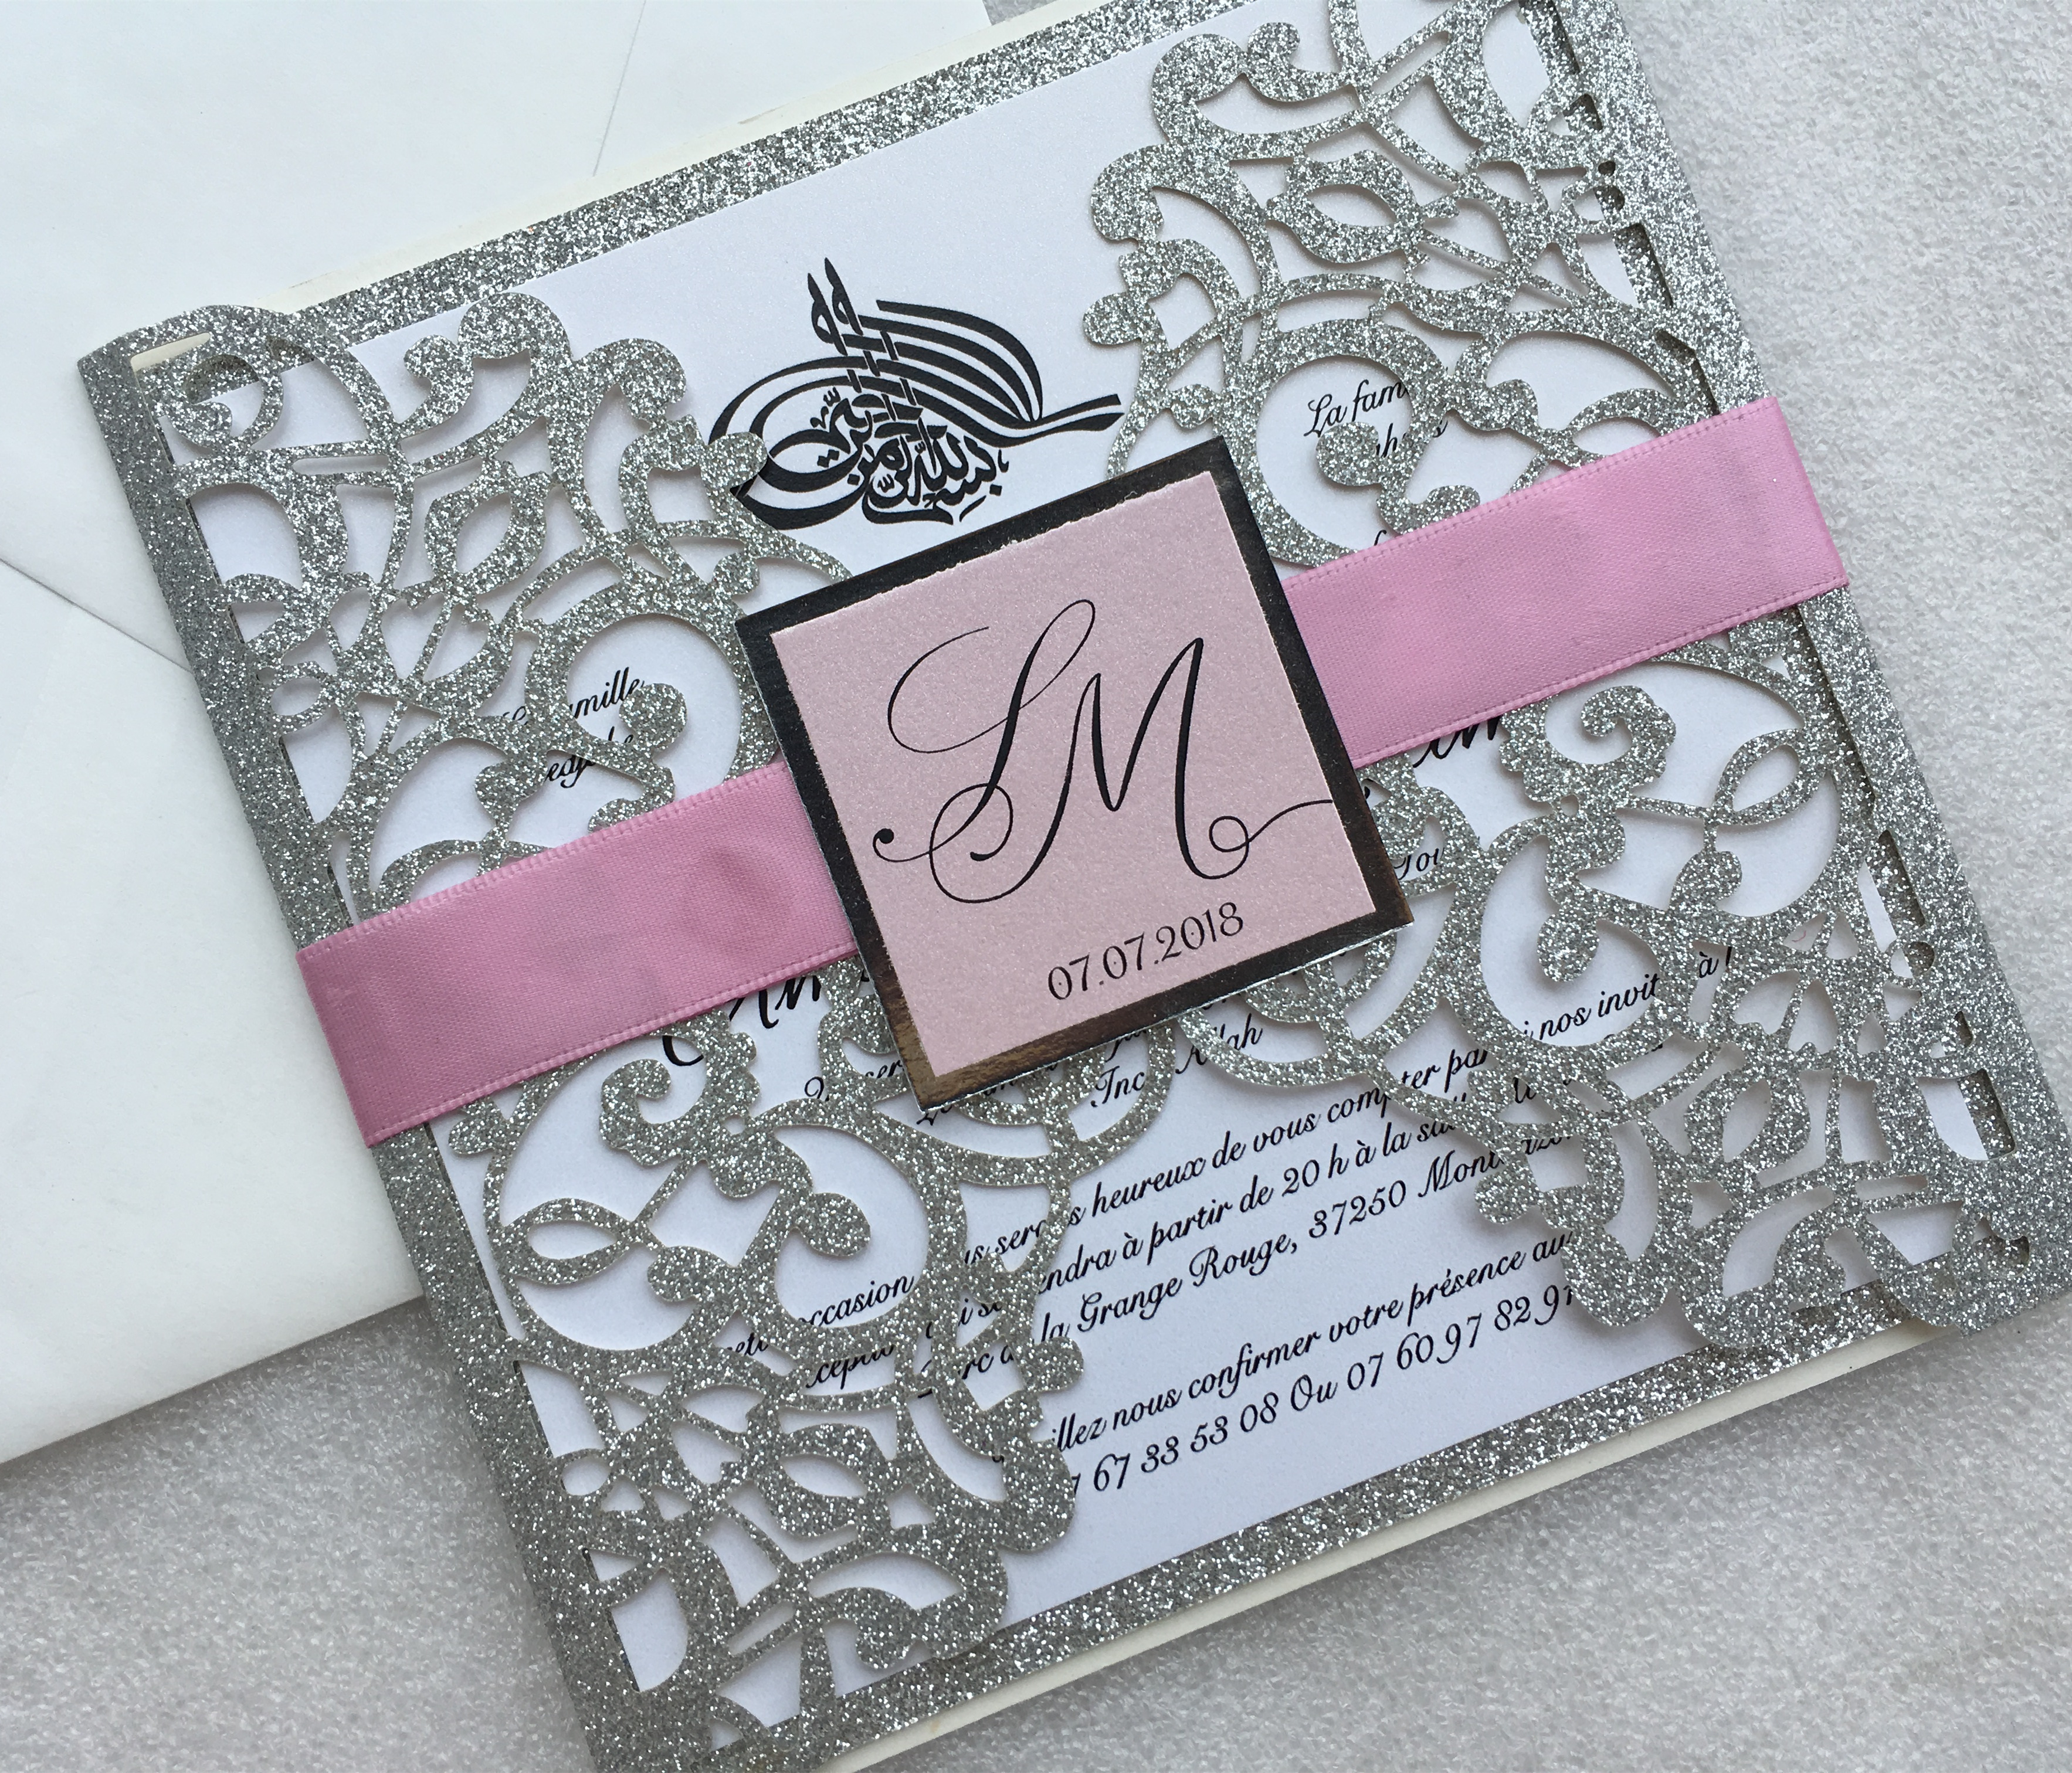 Laser Cut Glitter Silver Wedding Party Invitations, Customized Marriage Engagement Invitation Cards, 50PCS, Express Shipping-in Cards & Invitations from Home & Garden    1